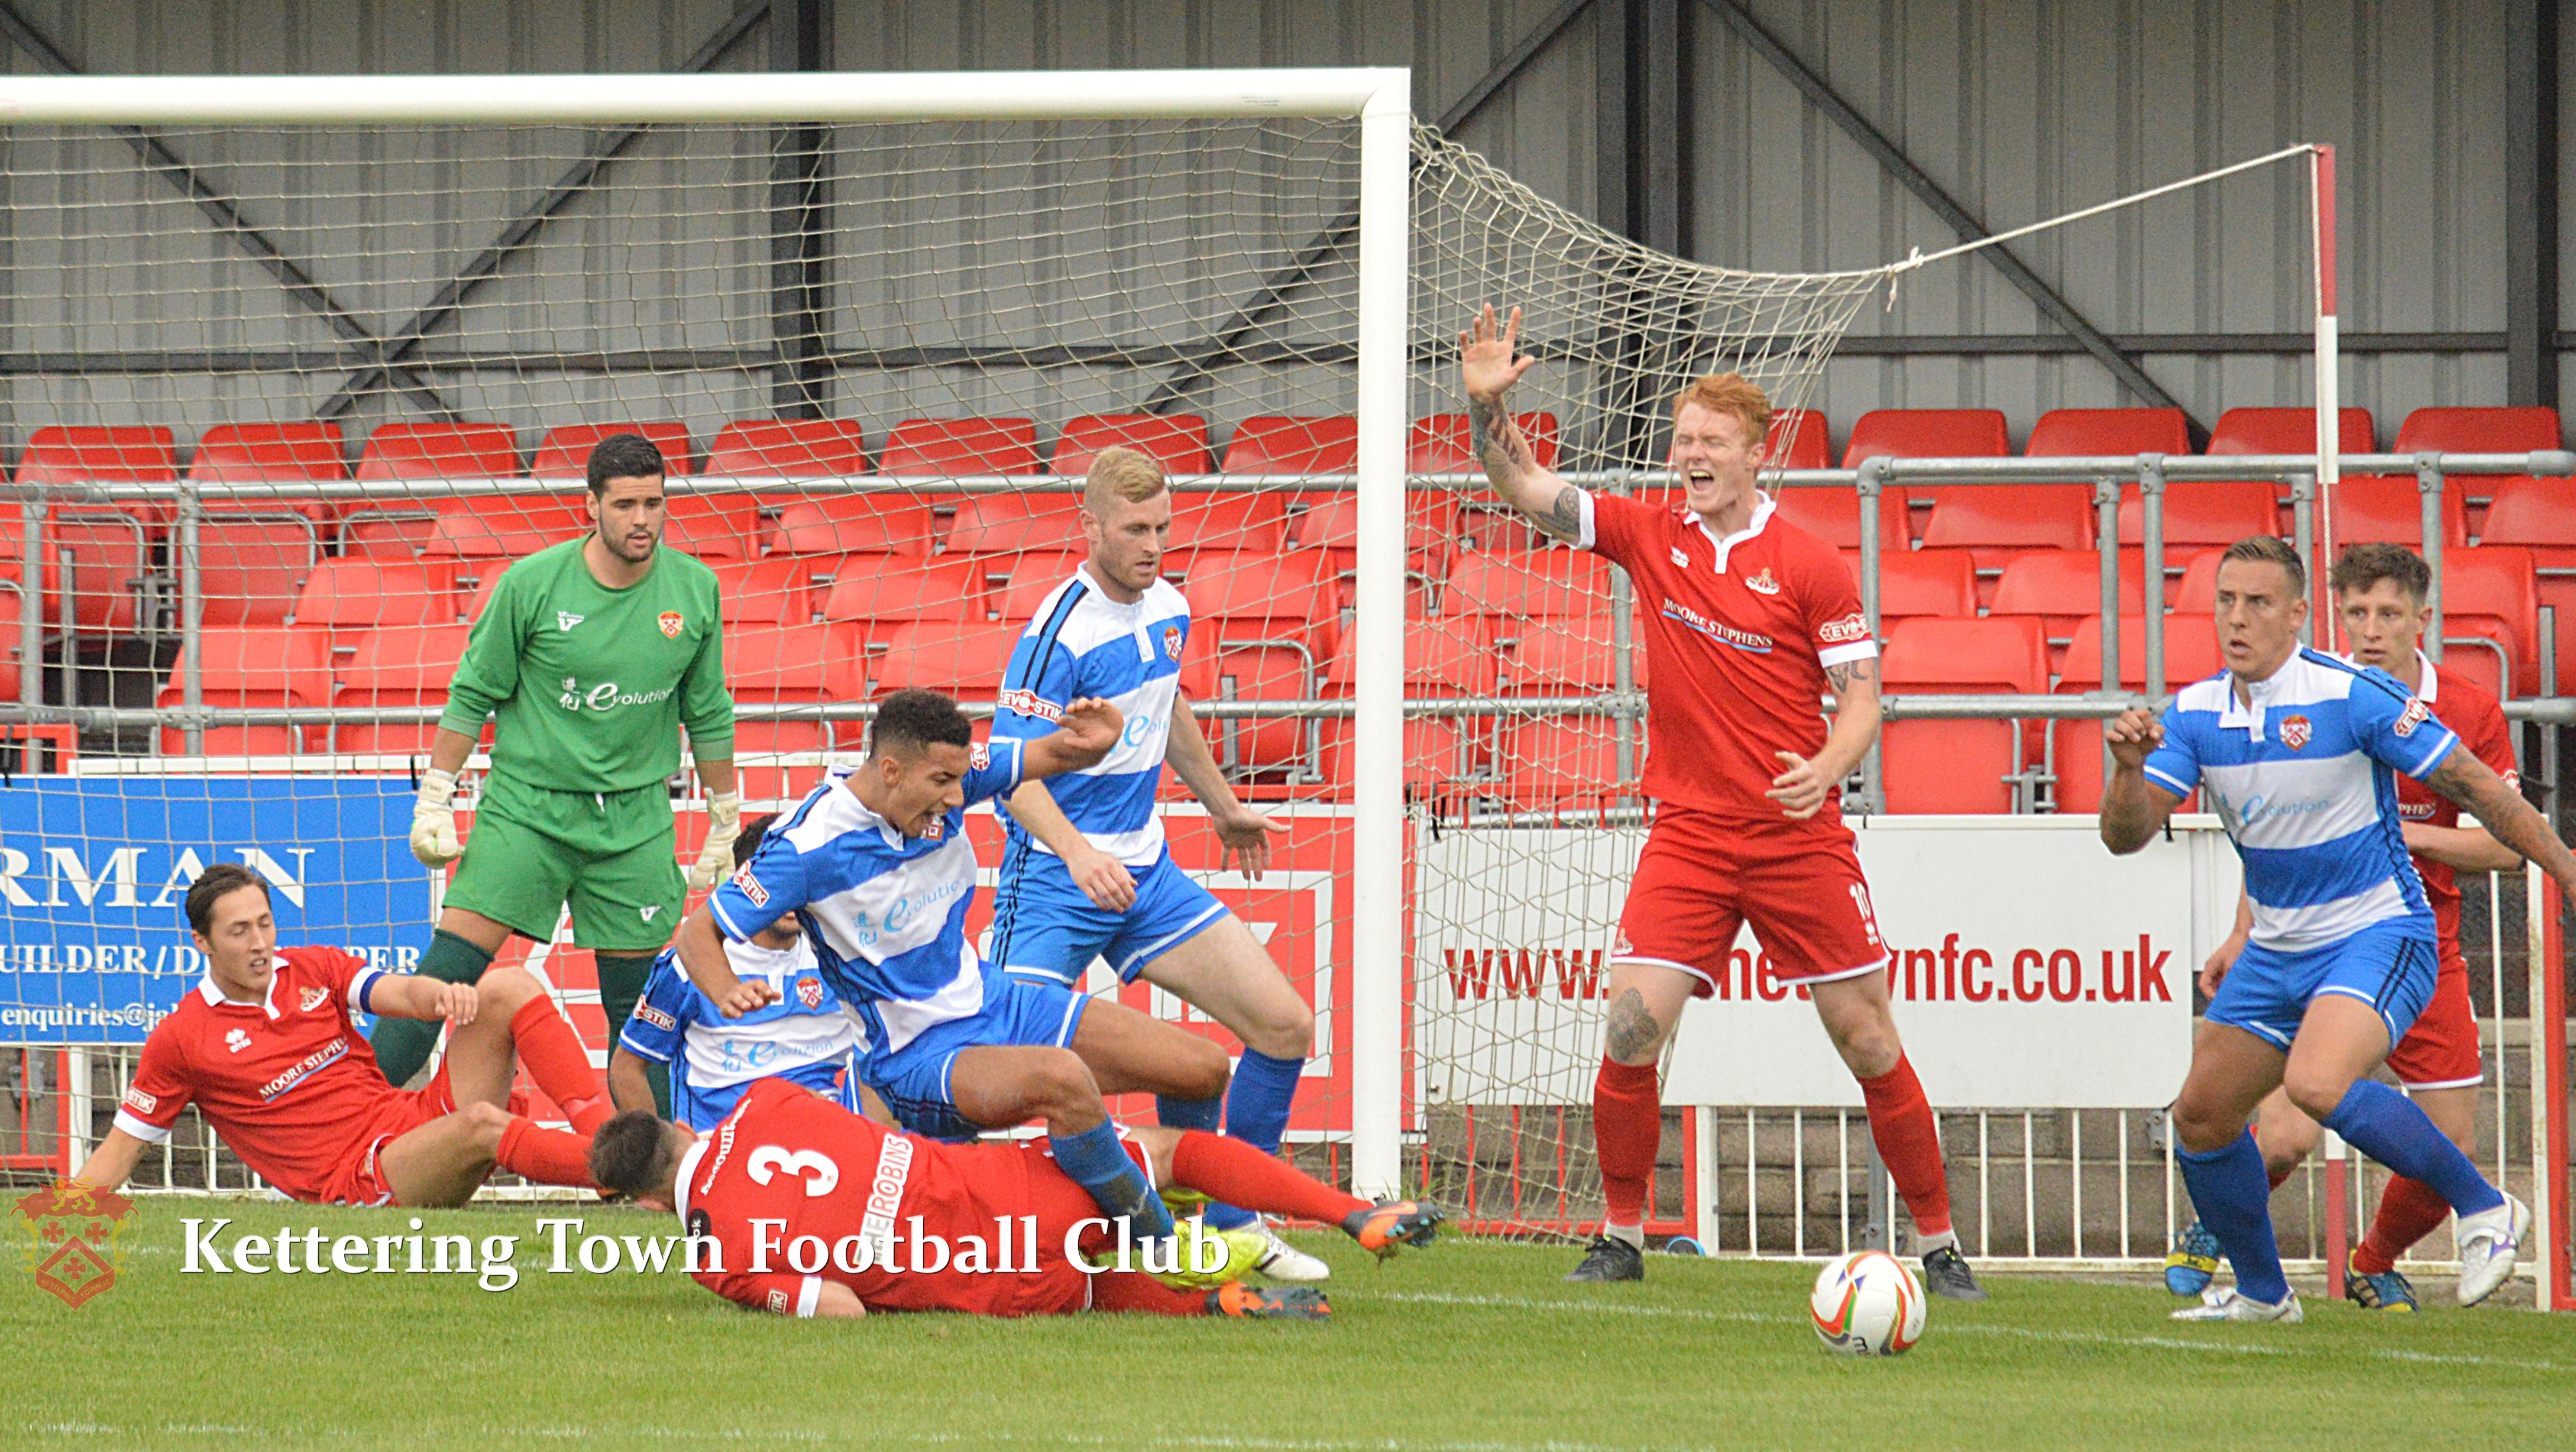 Frome Town 1-2 Kettering Town | Kettering Town Football Club